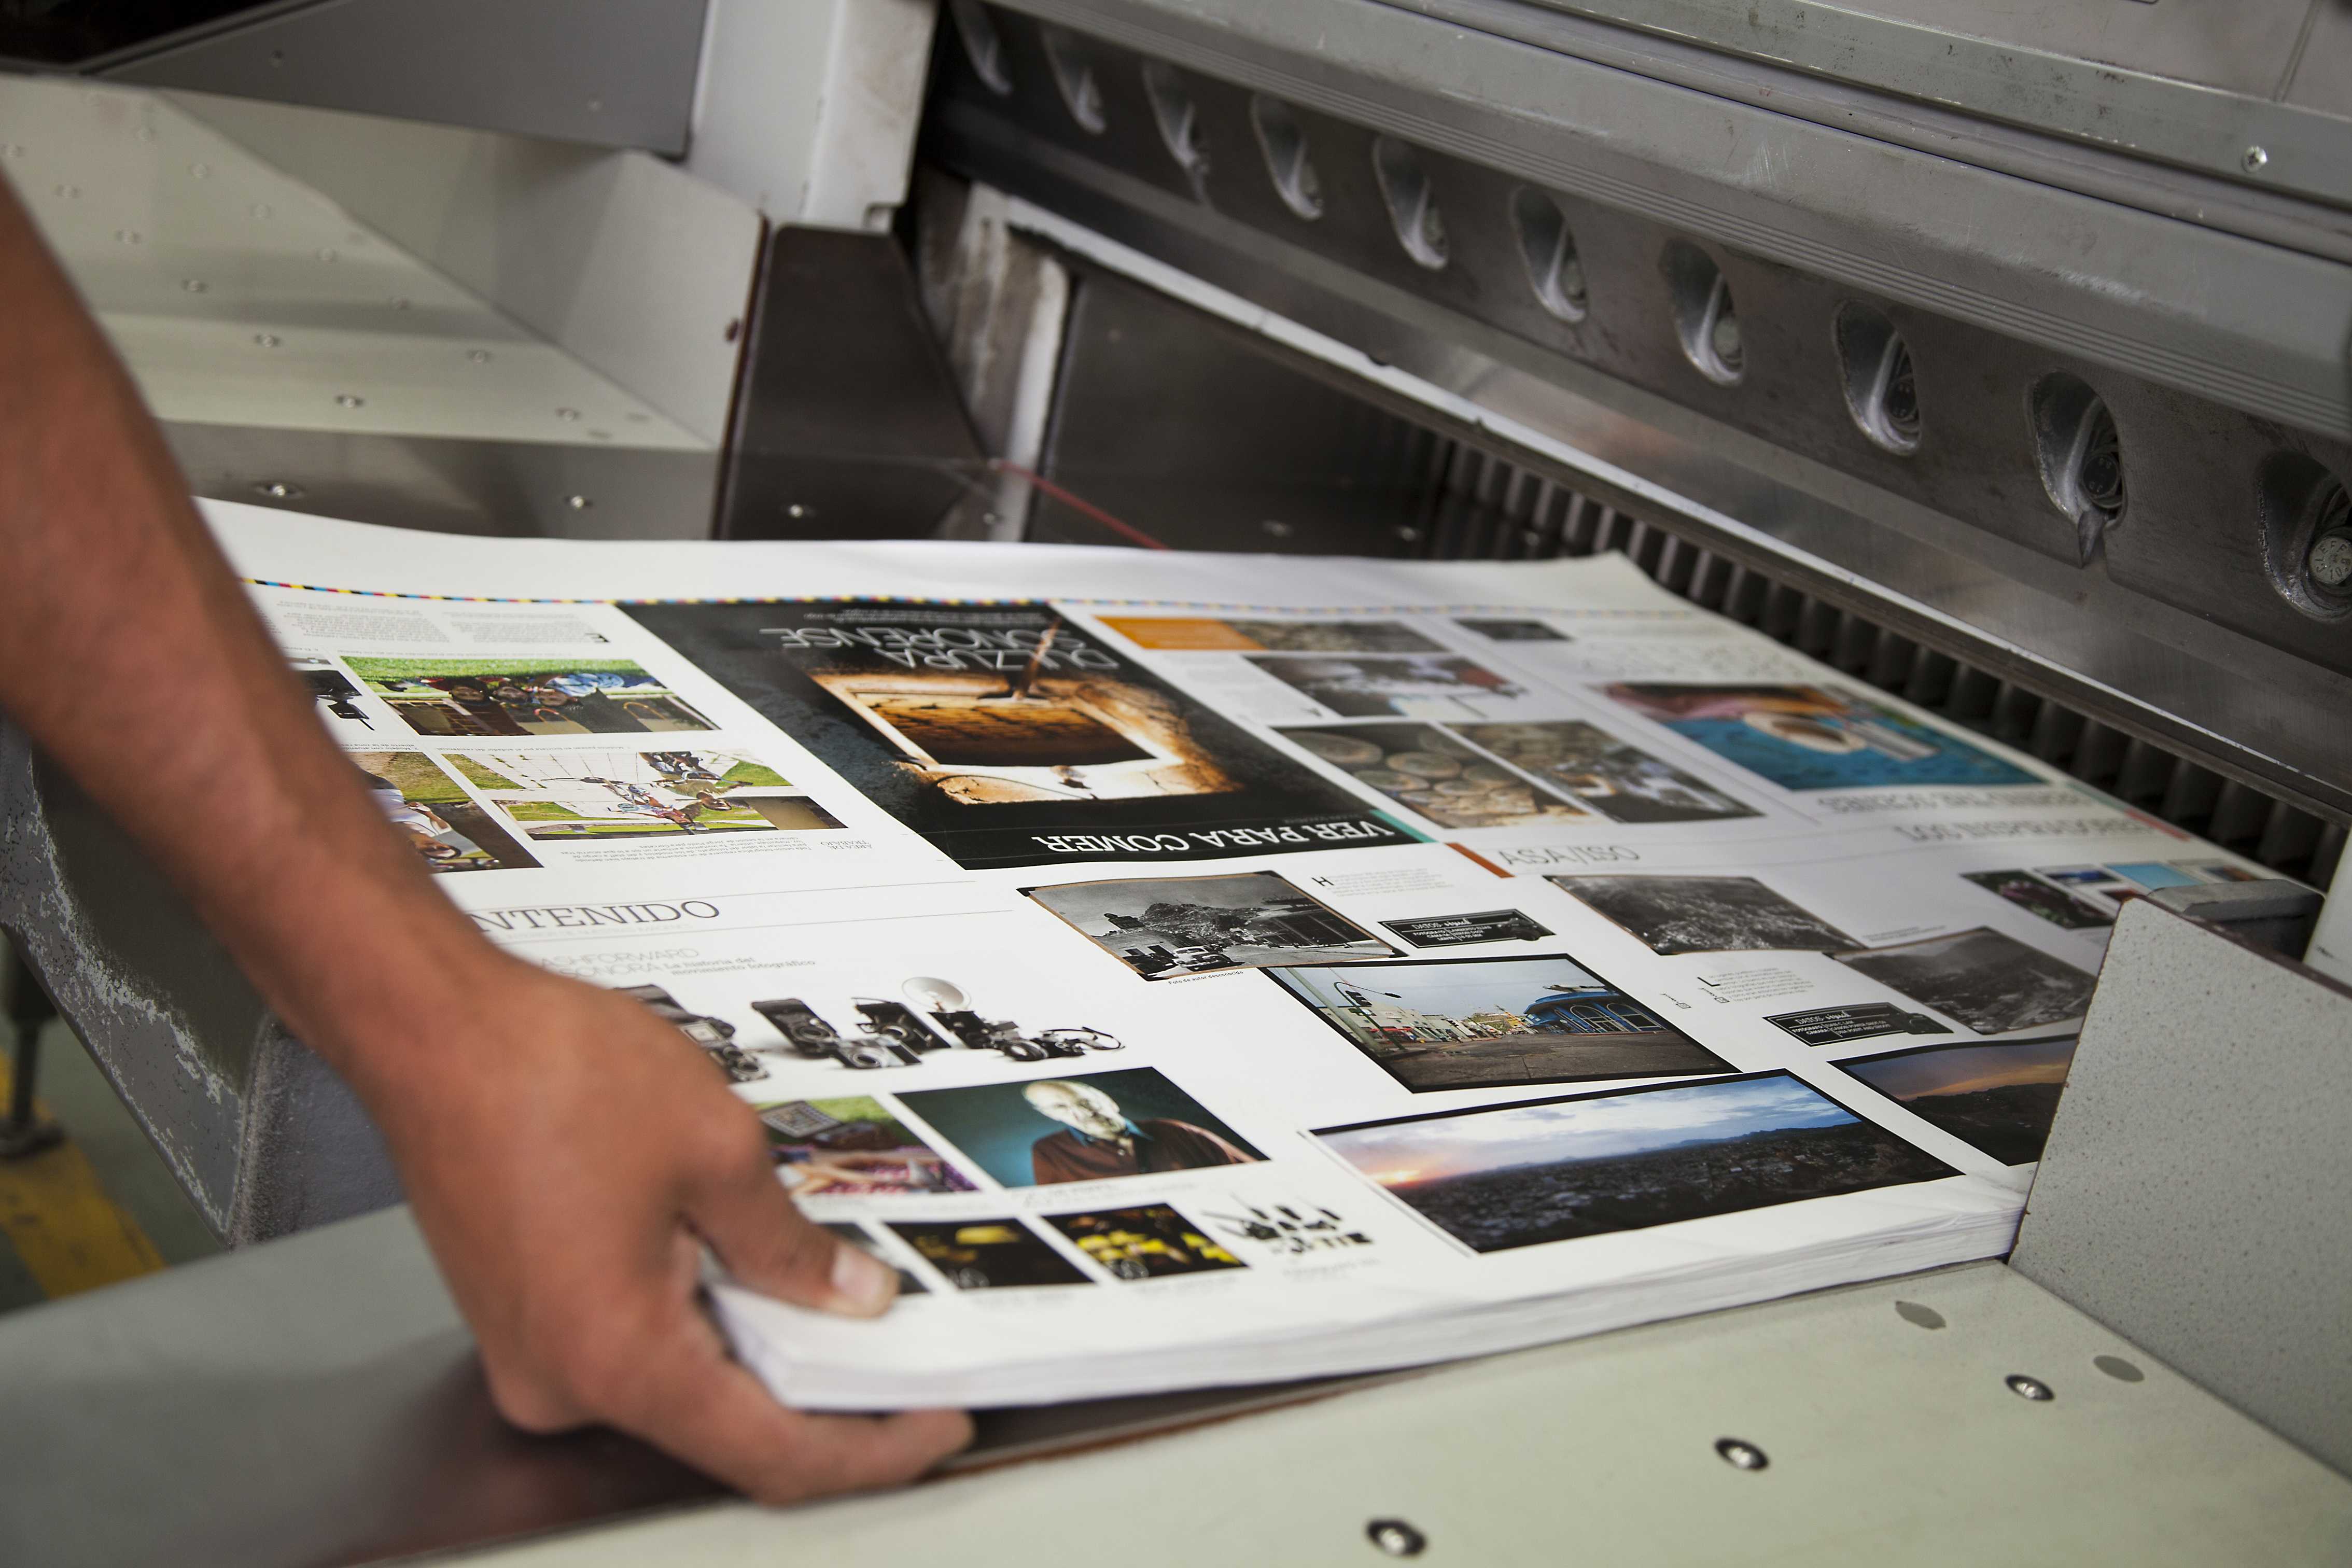 Ultimate TechnoGraphics - Blog - 10 Things to Know About Gang Run Printing in Poland - 9